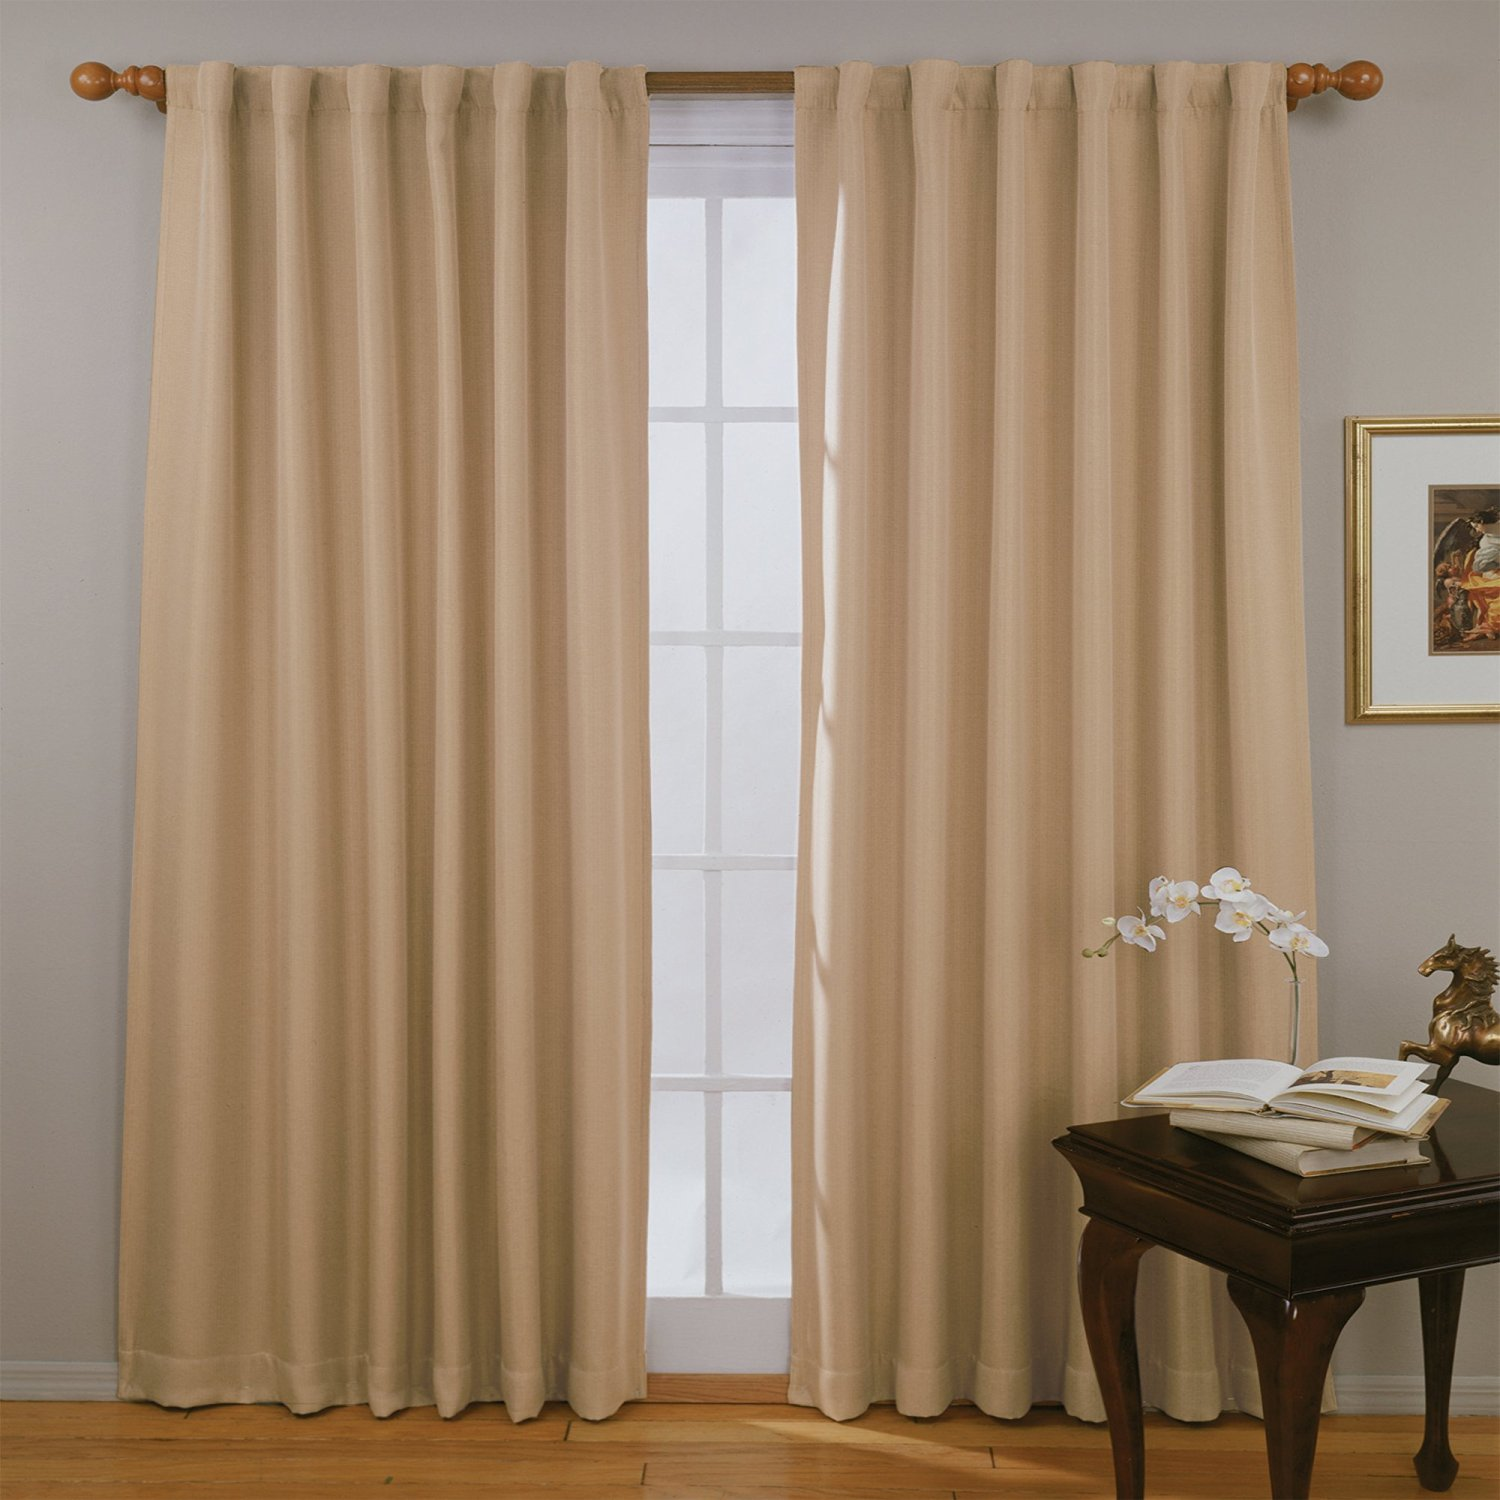 Thermal Curtains Grommet Top | Insulated Thermal Curtains | Thermal Insulated Curtains